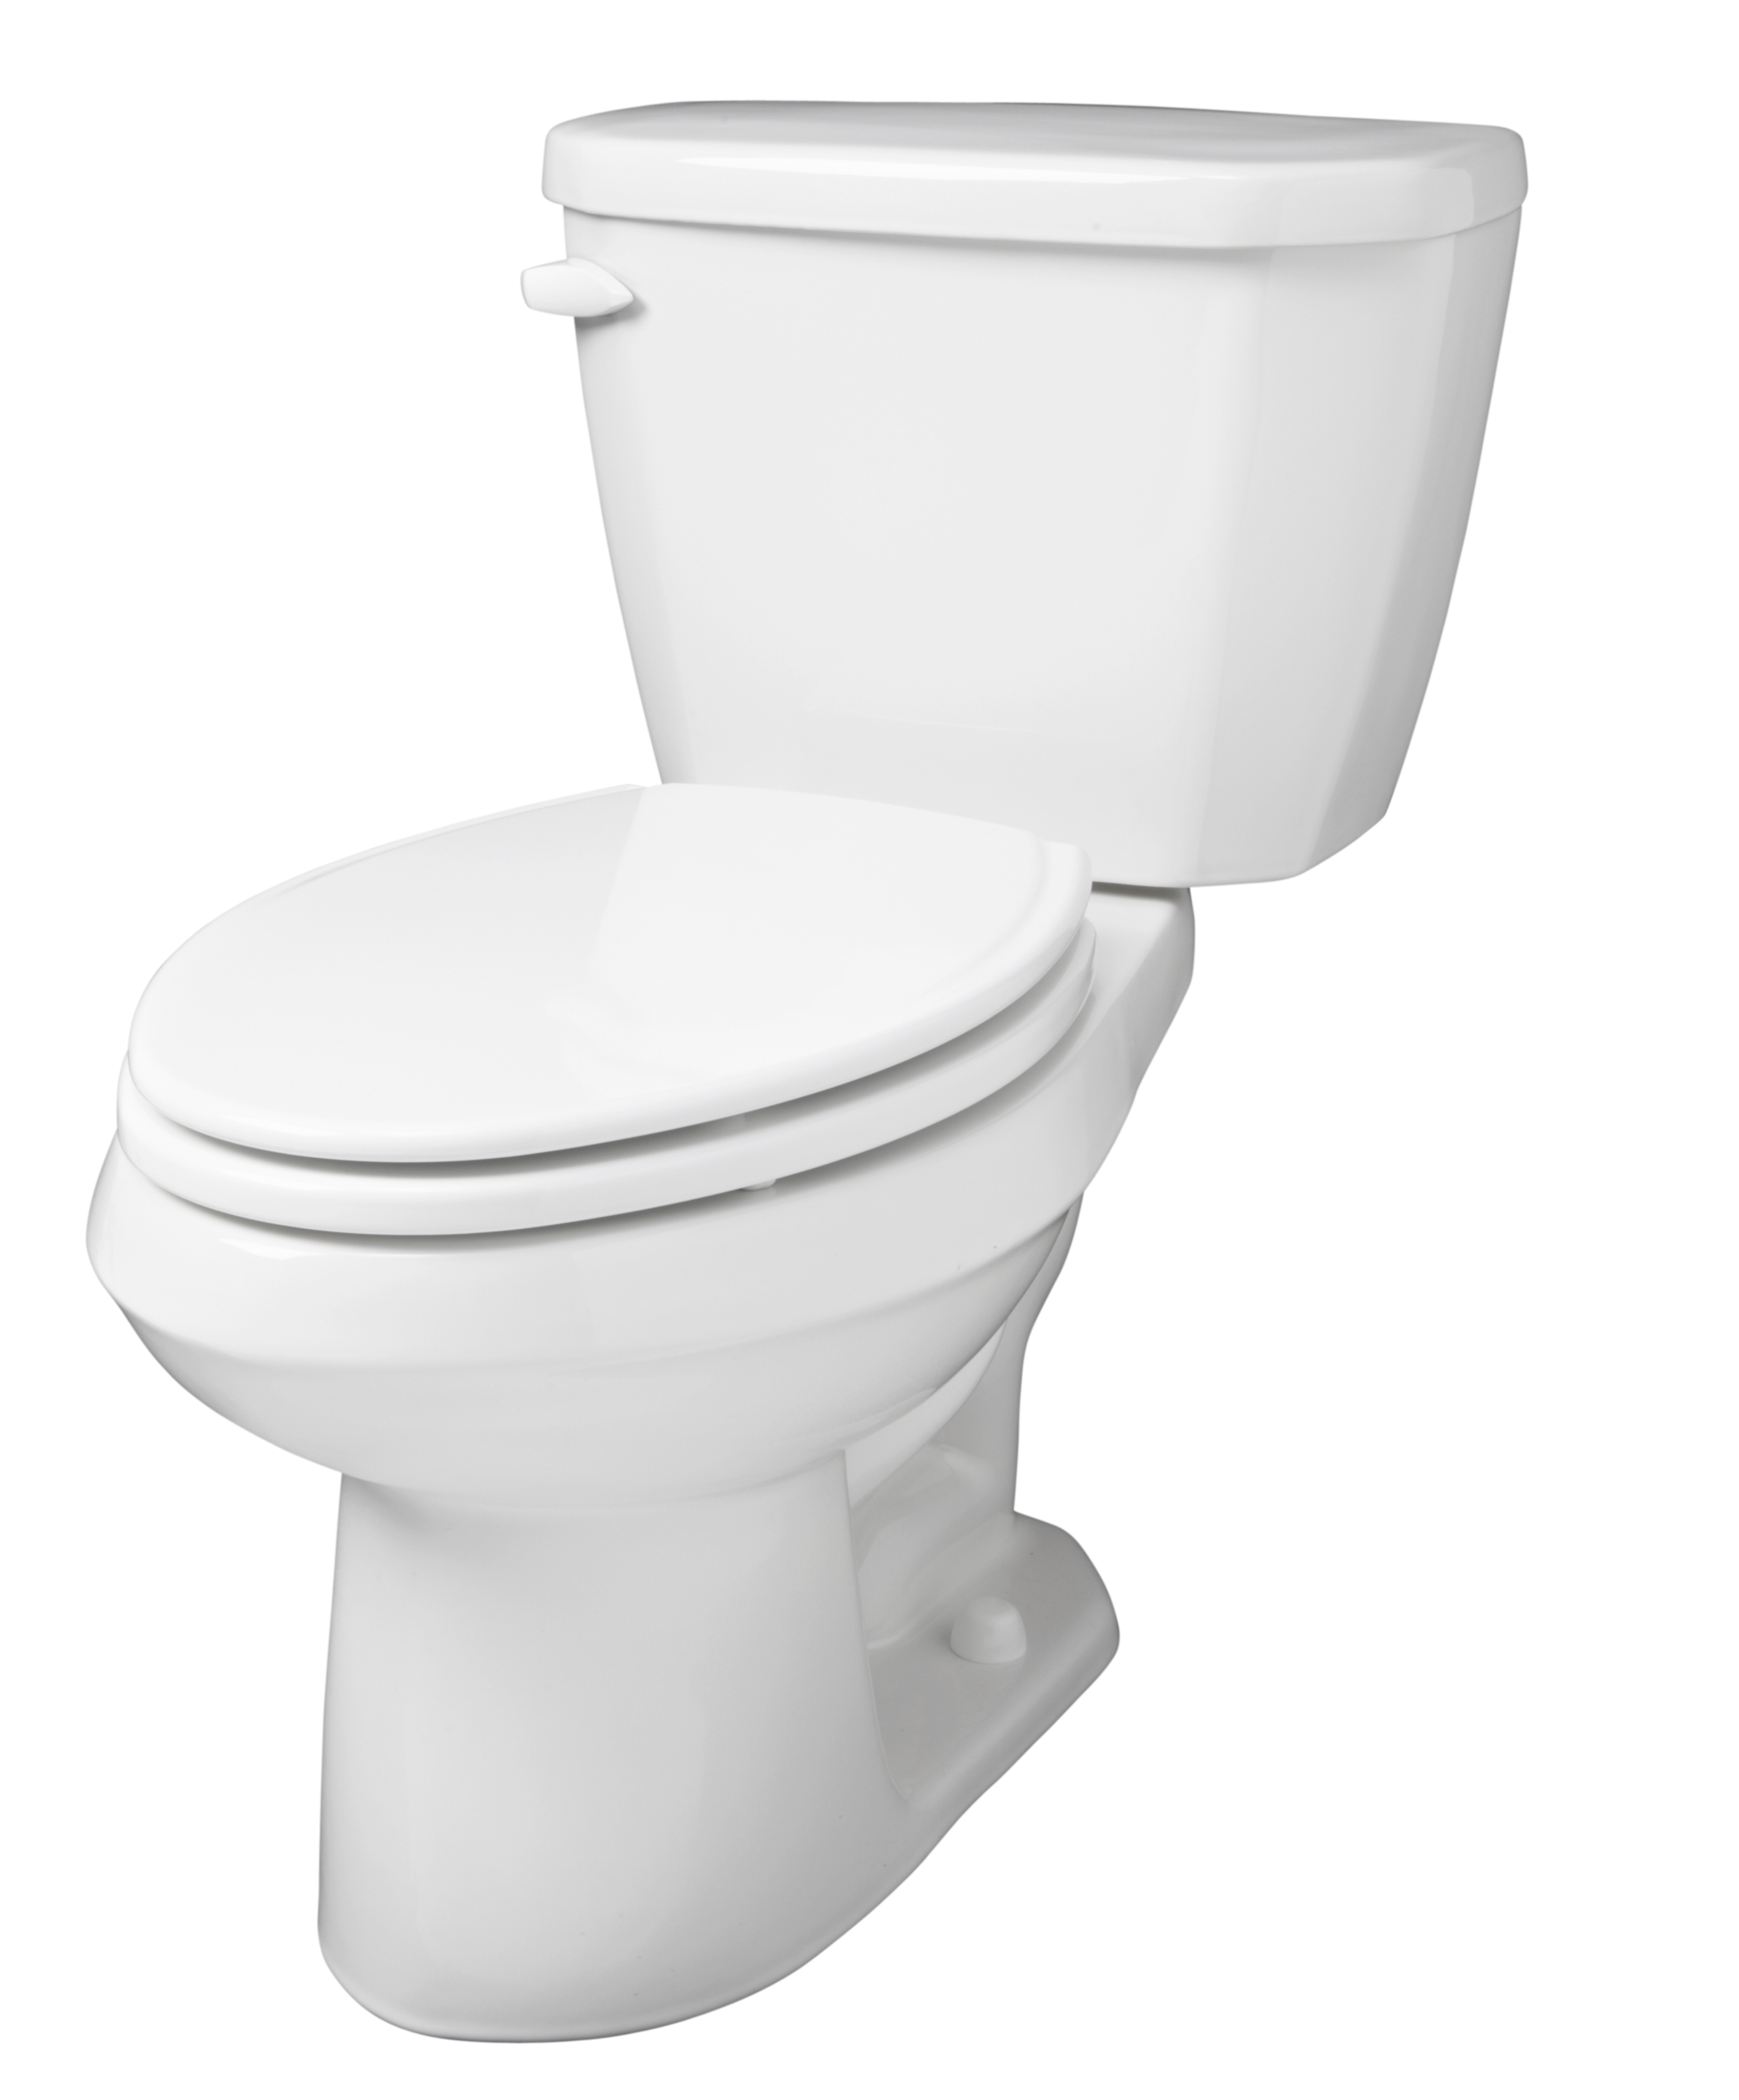 Viper 1 6 gpf 14 rough in two piece elongated toilet for Gerbiere toit